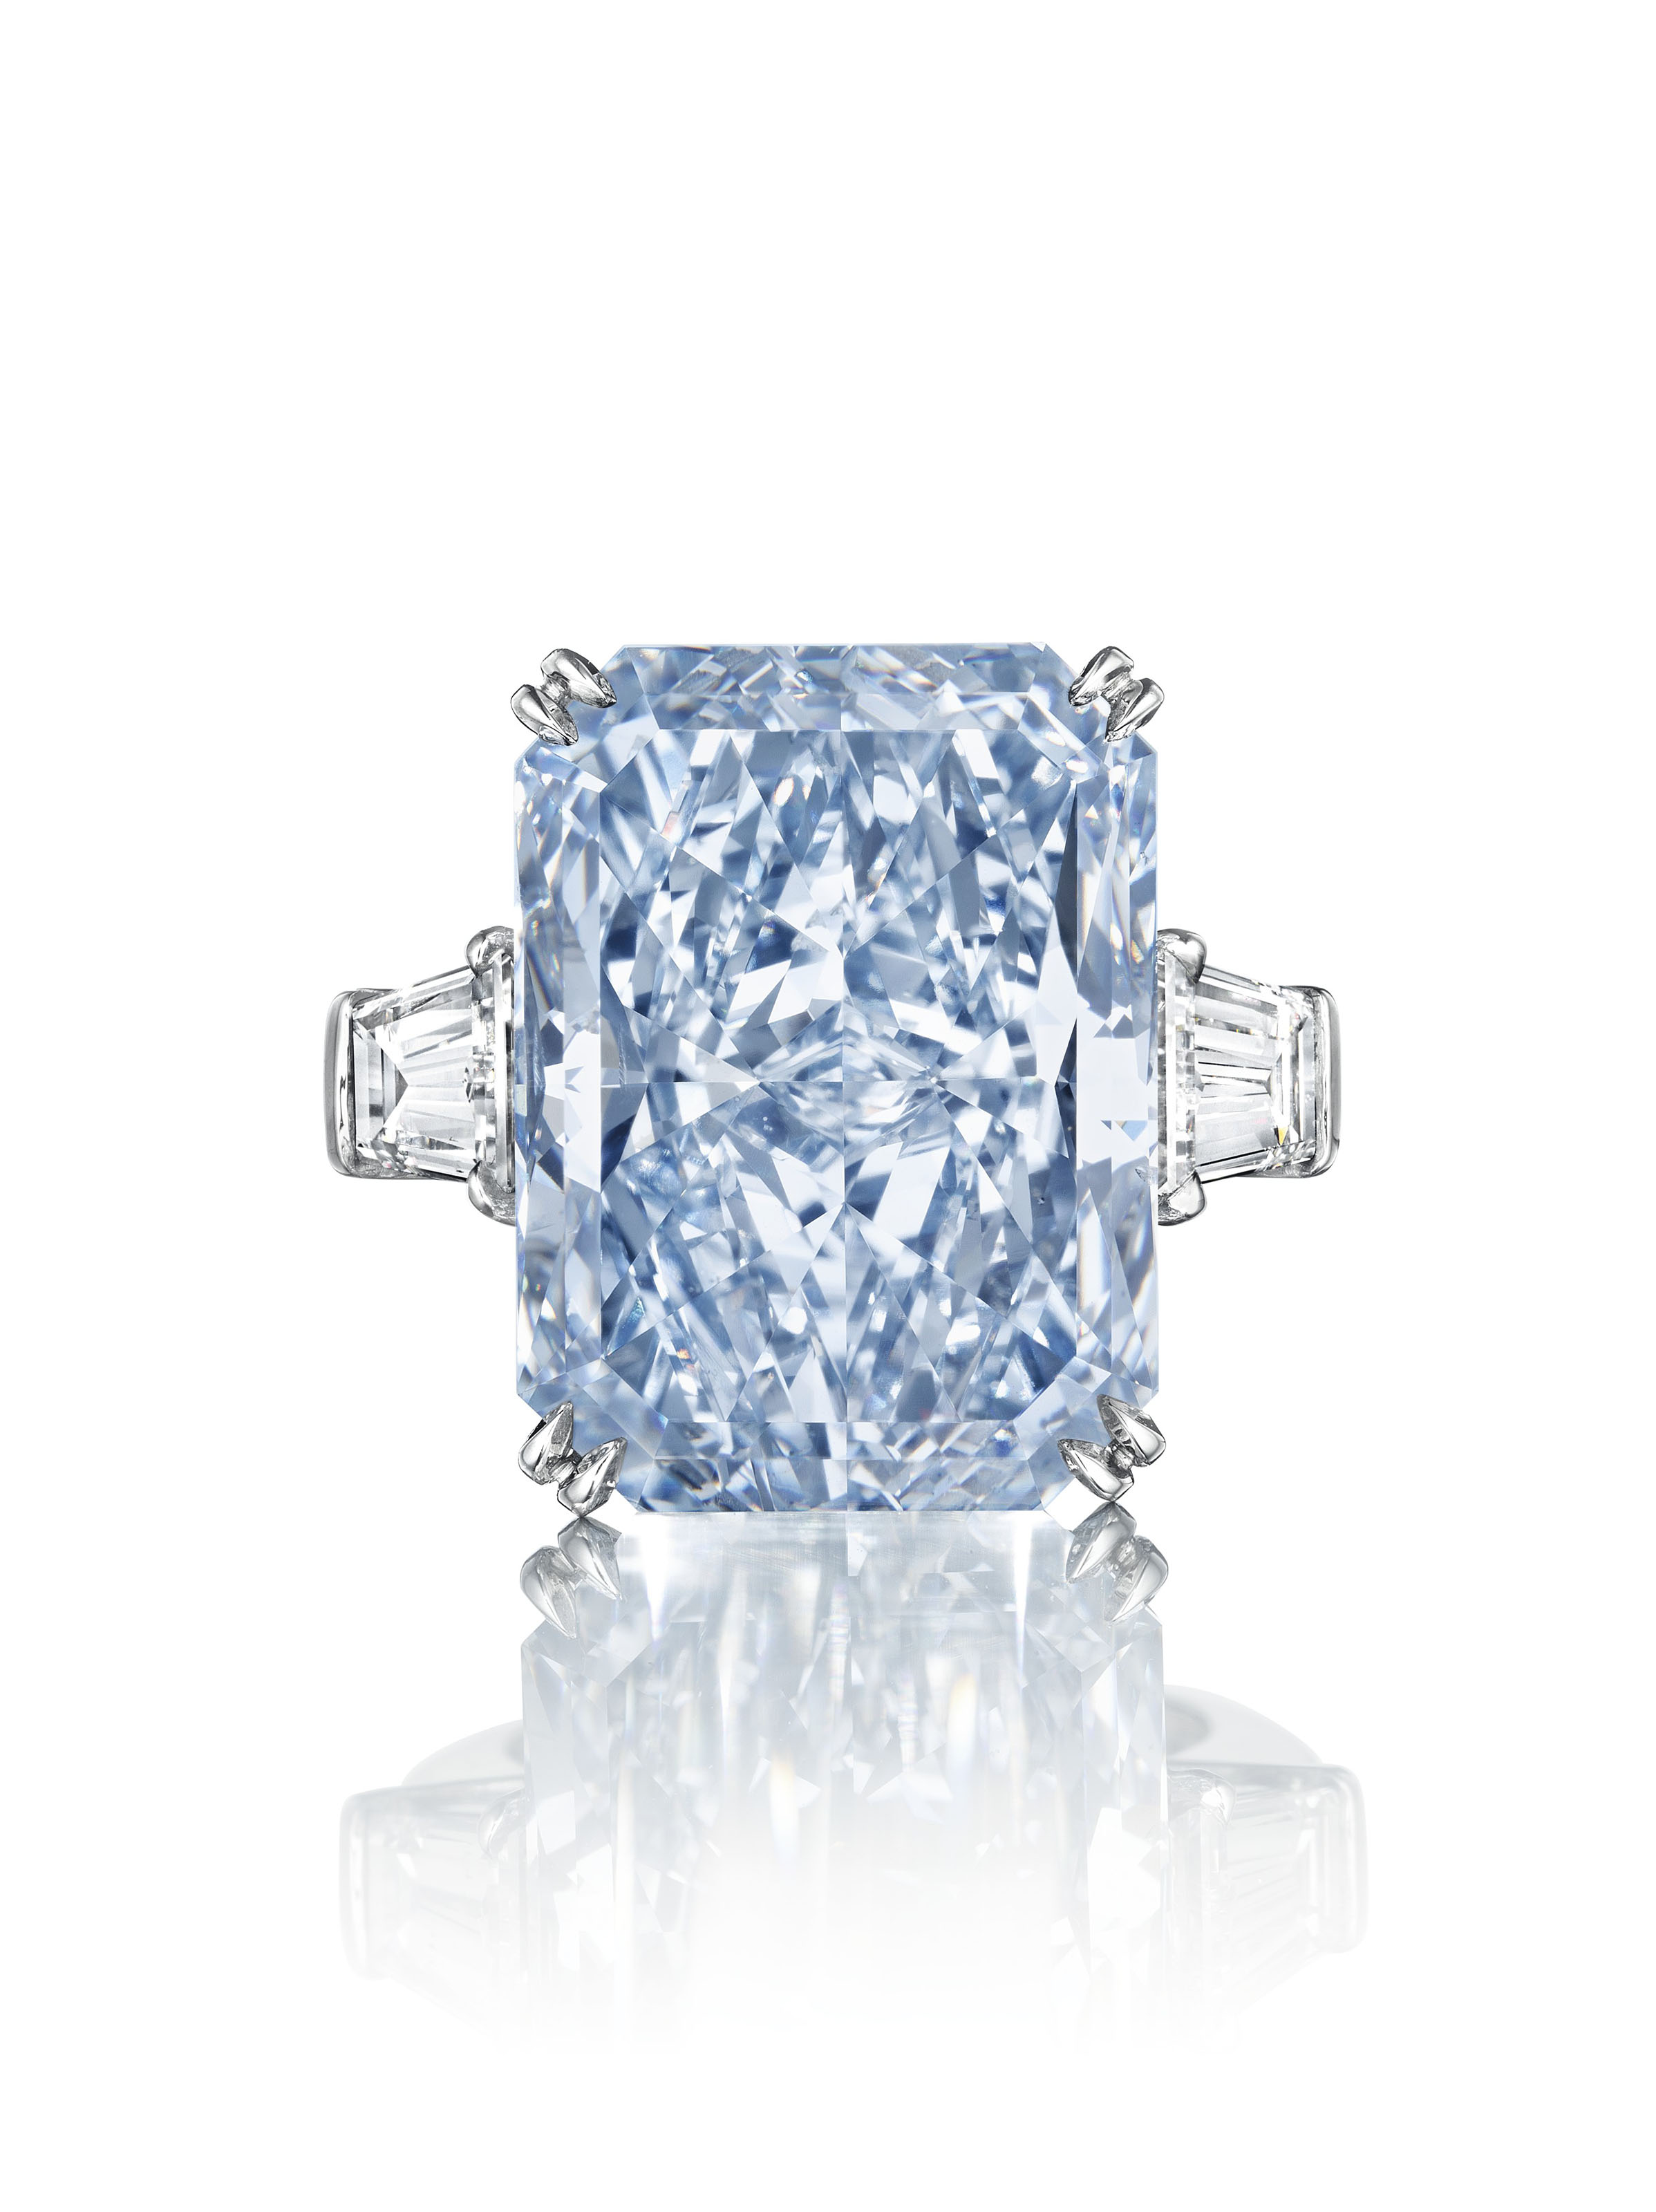 A MAGNIFICENT COLORED DIAMOND RING